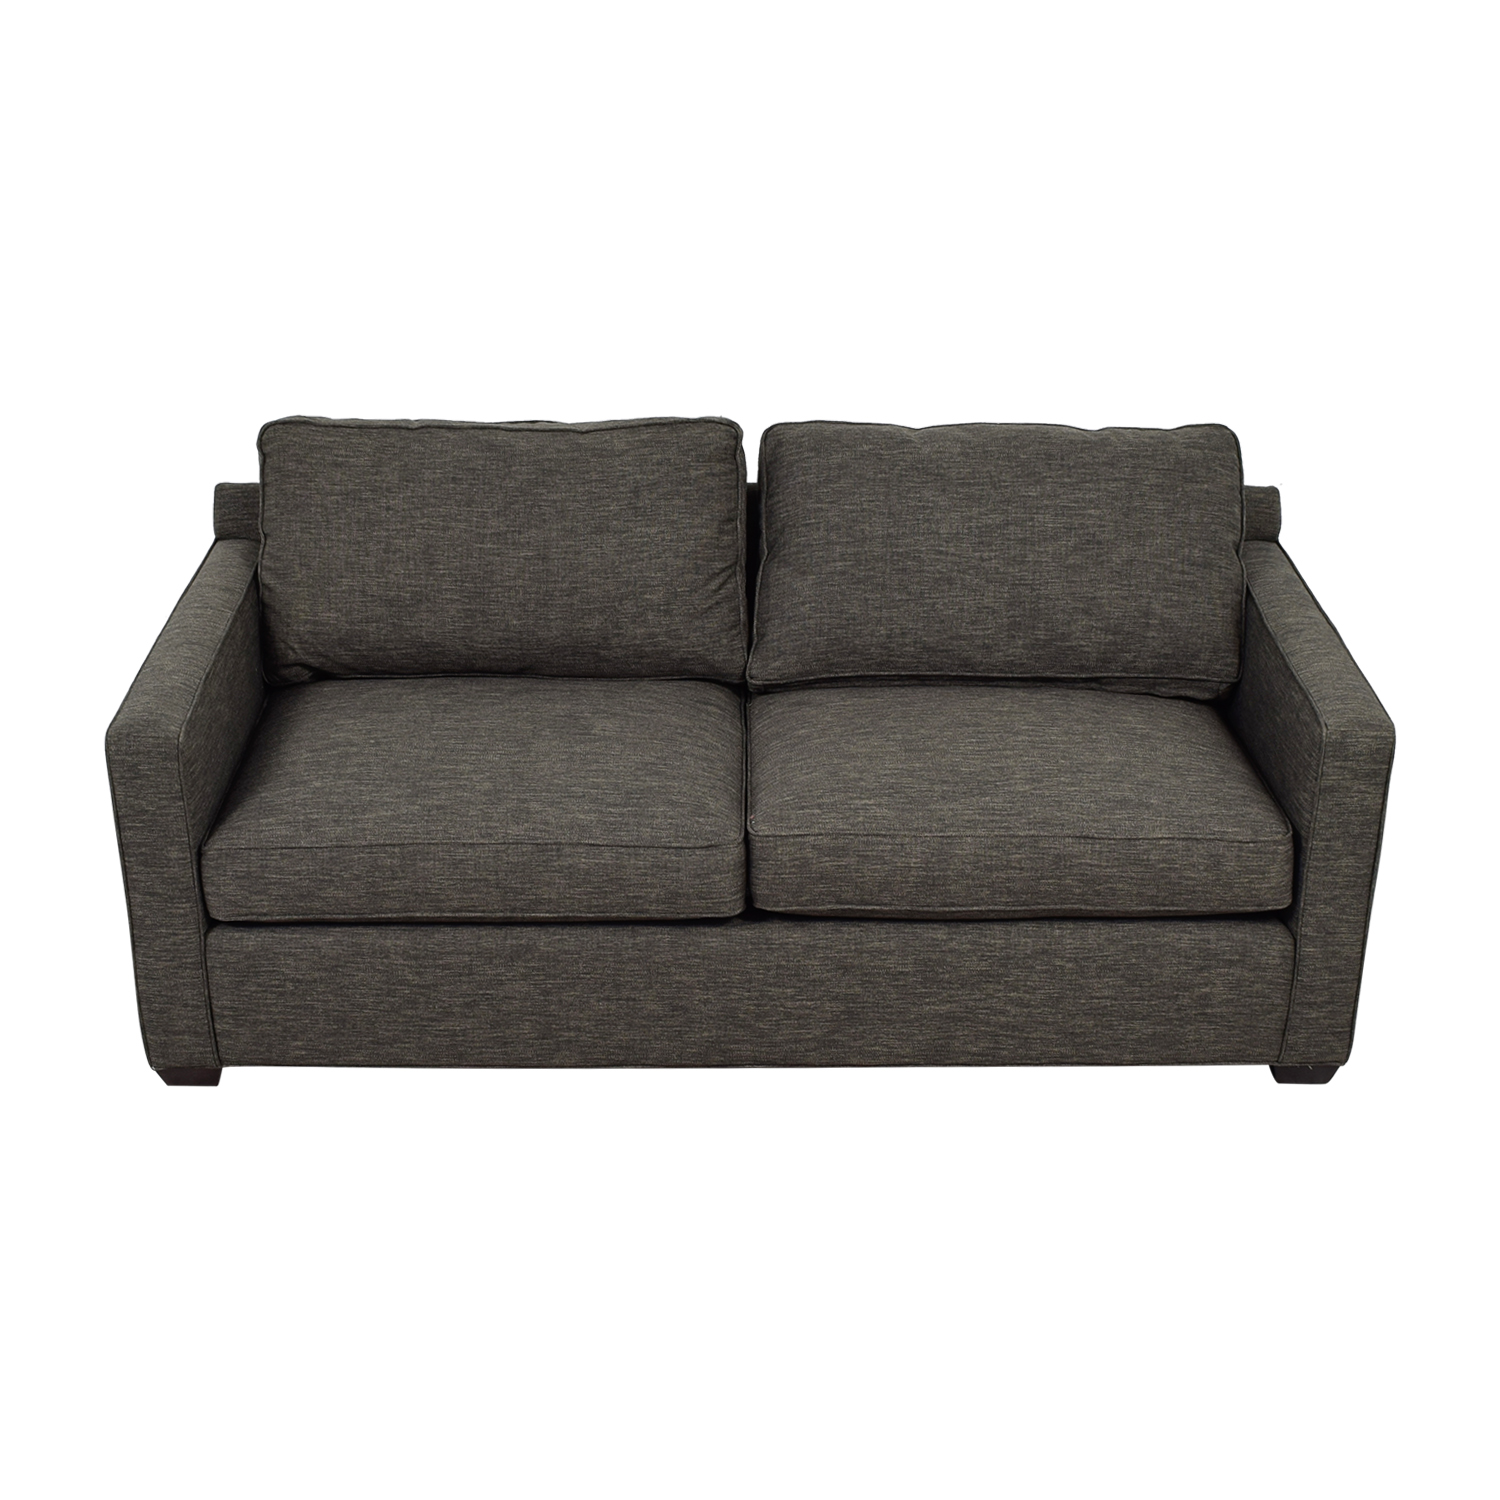 Crate & Barrel Crate & Barrel Davis Charcoal Two-Cushion Sofa for sale